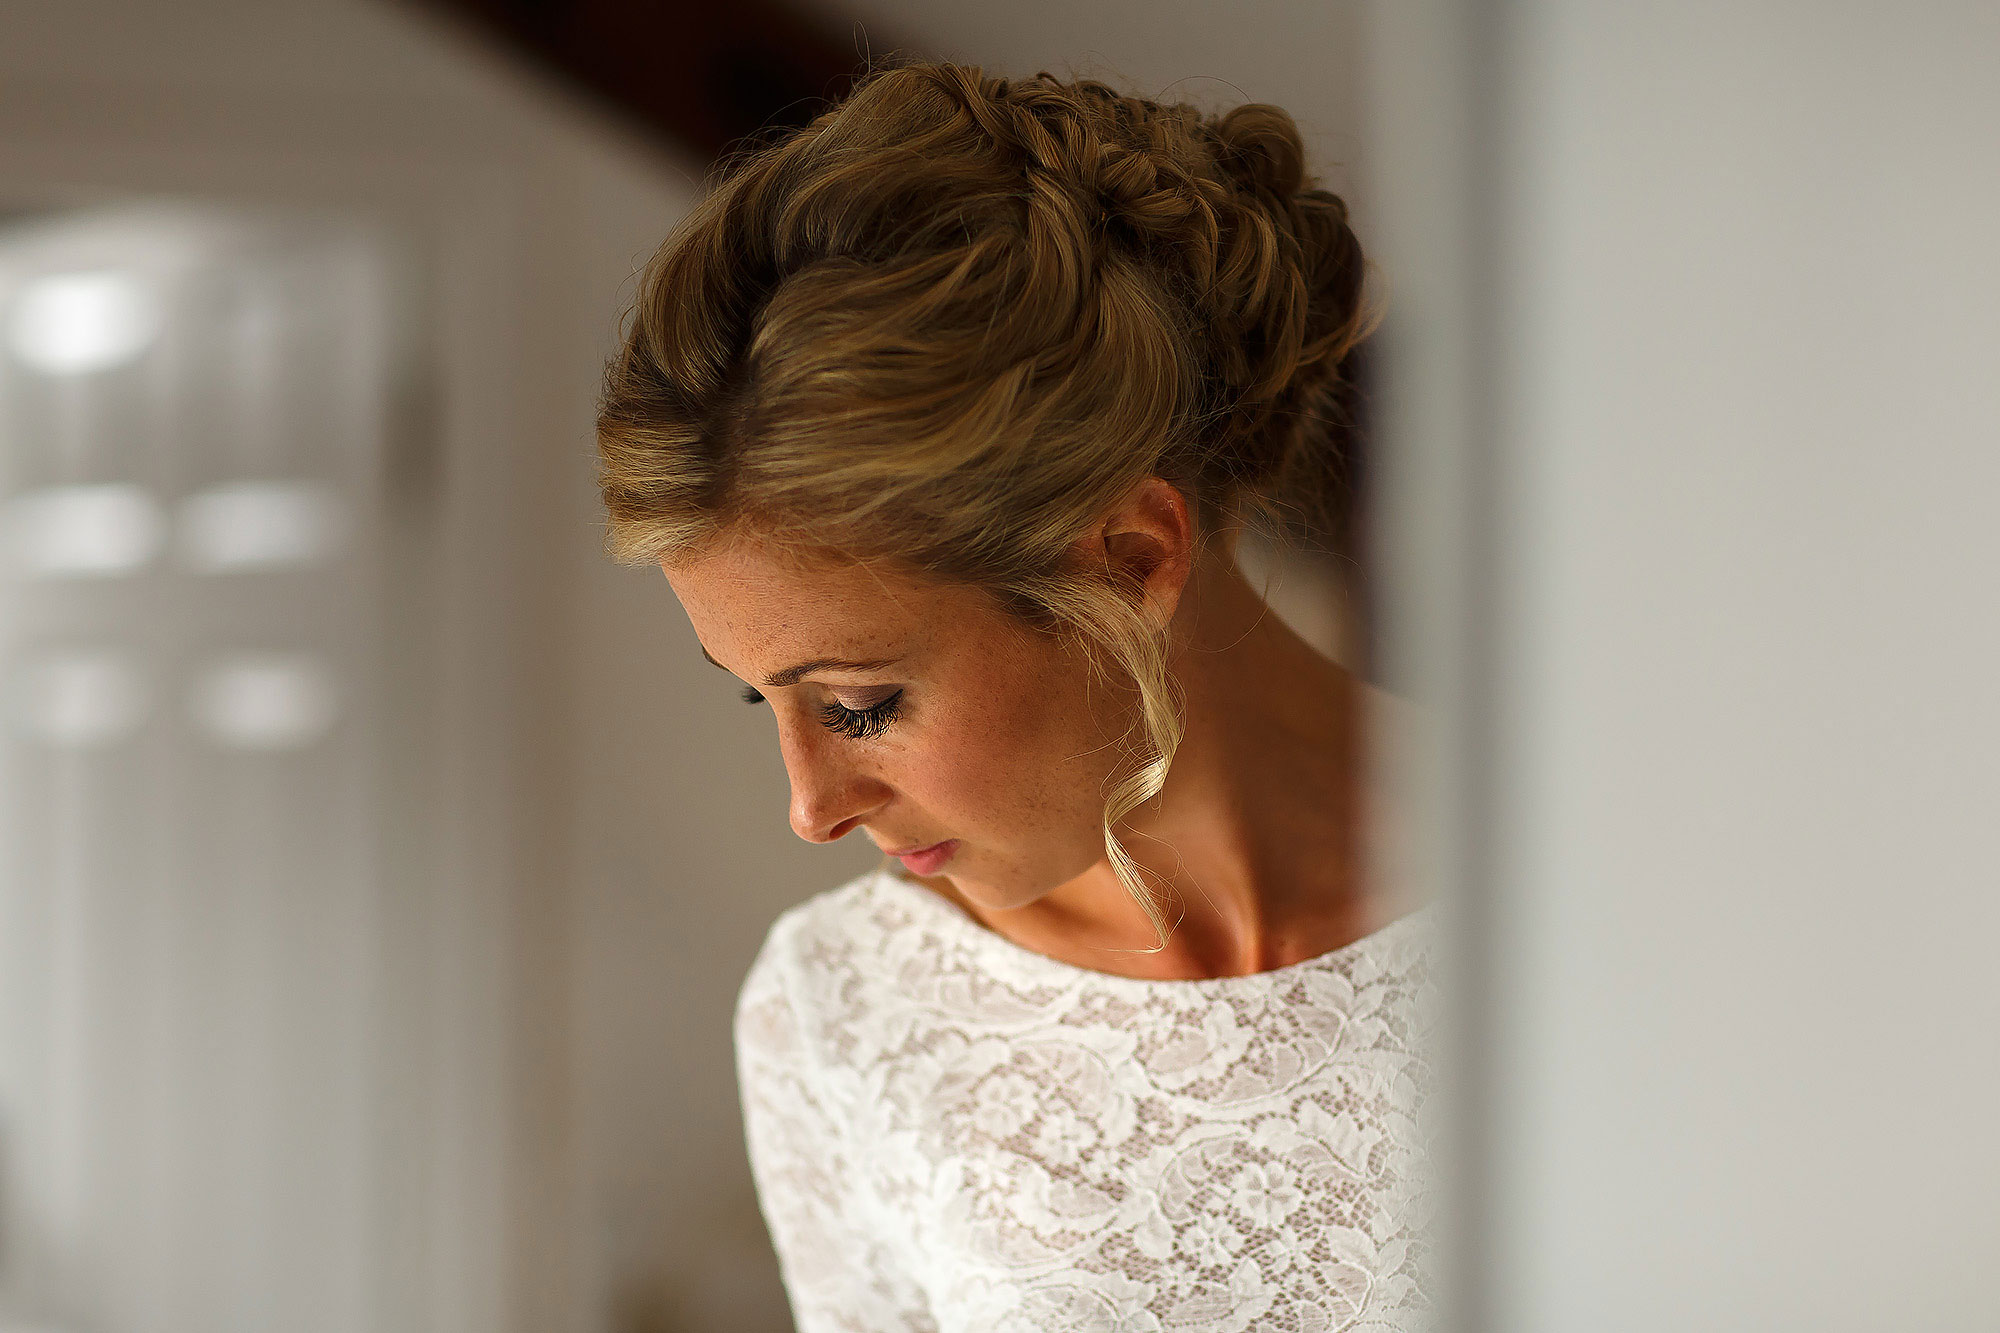 Bride with blonde hair pinned back looking down towards her lace wedding dress - The Out Barn at Clough Bottom Wedding Photography